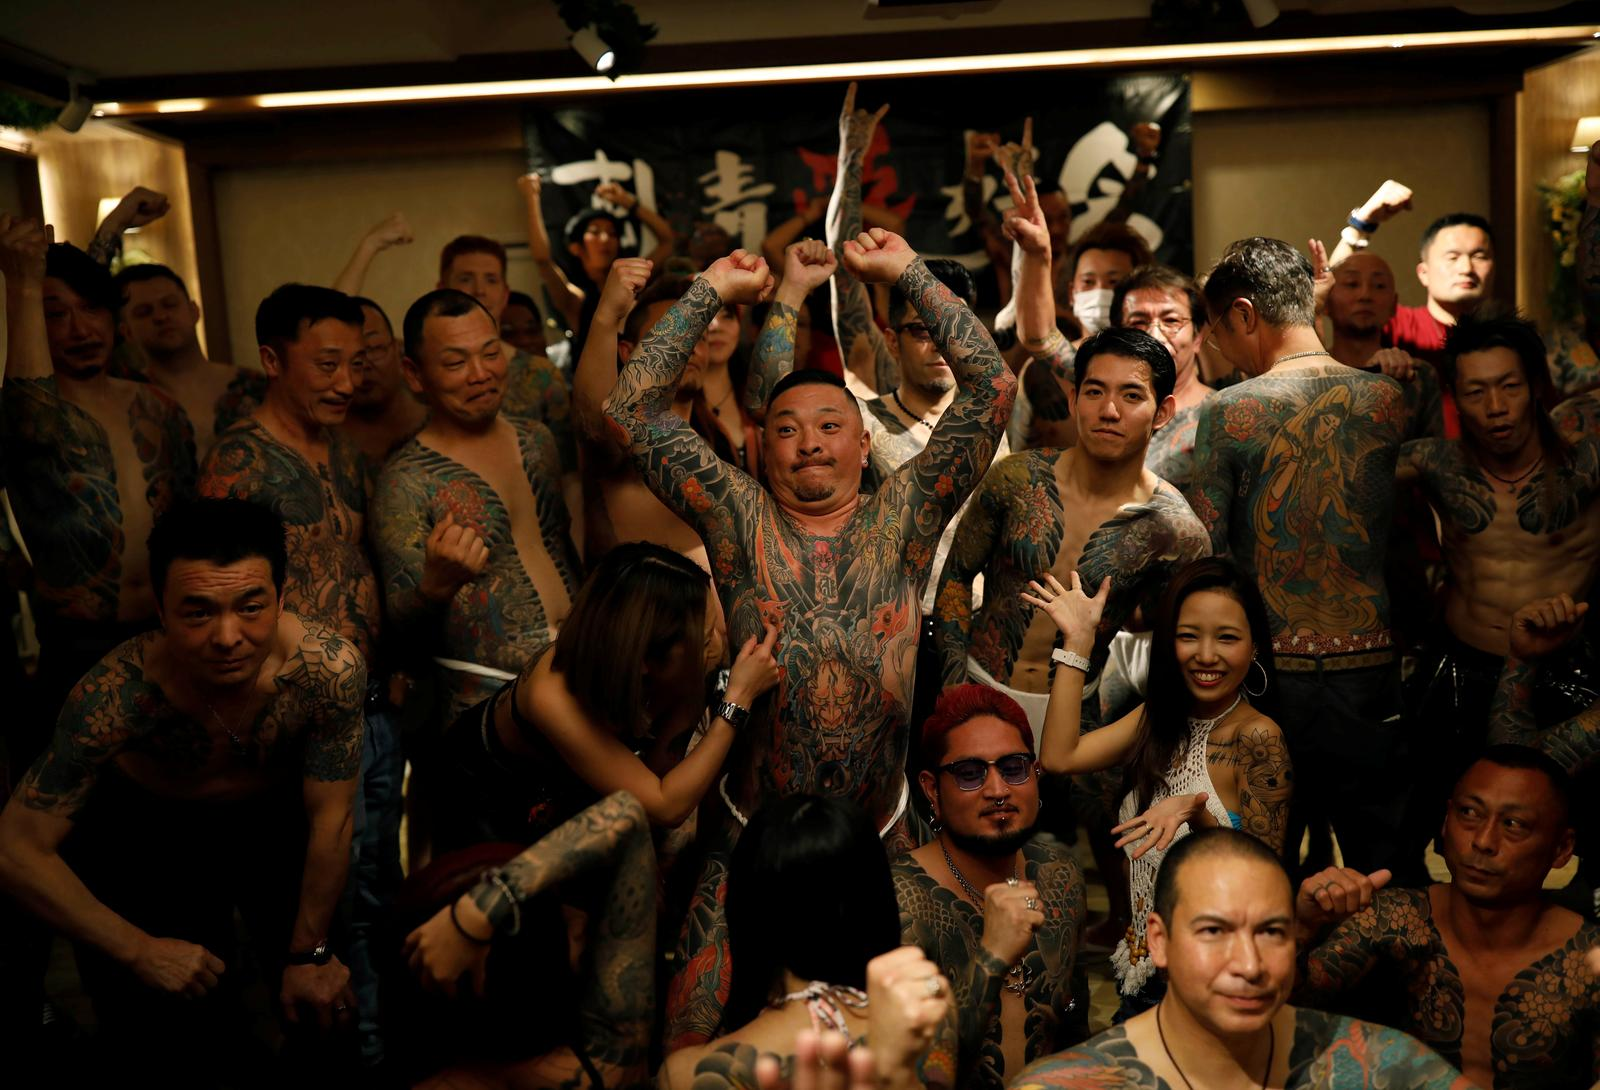 People with tattoos gather together for group photos at the annual gathering of the Irezumi Aikokai (Tattoo Lovers Association) in Tokyo, Japan, February 16, 2020. Photo: Reuters